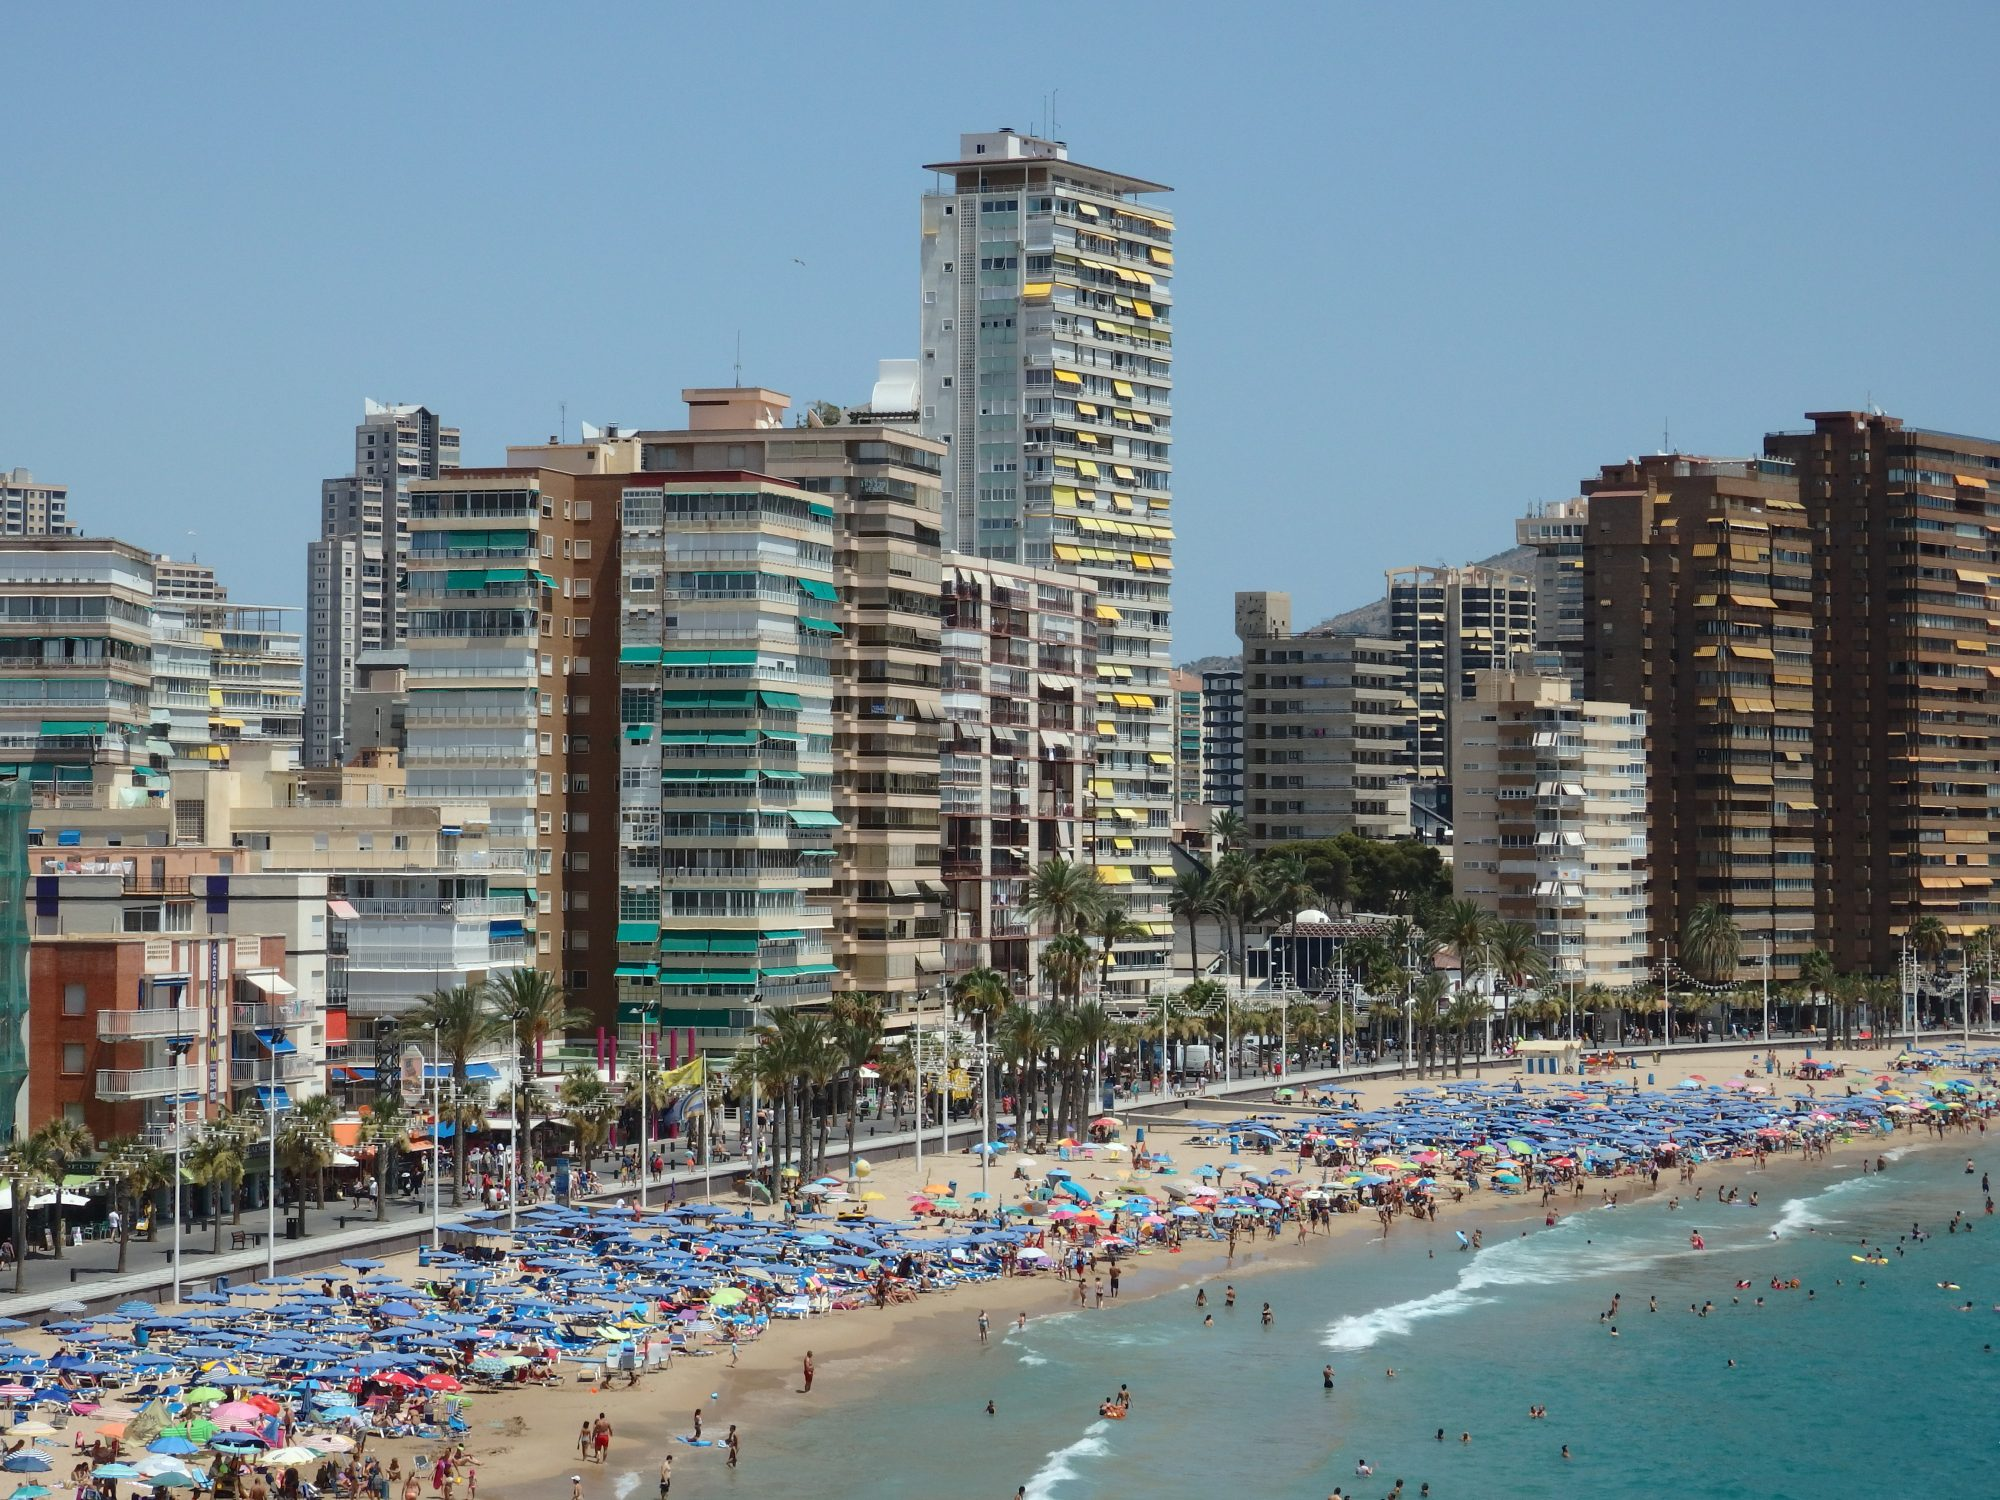 one part of Levante beach in Benidorm, Spain